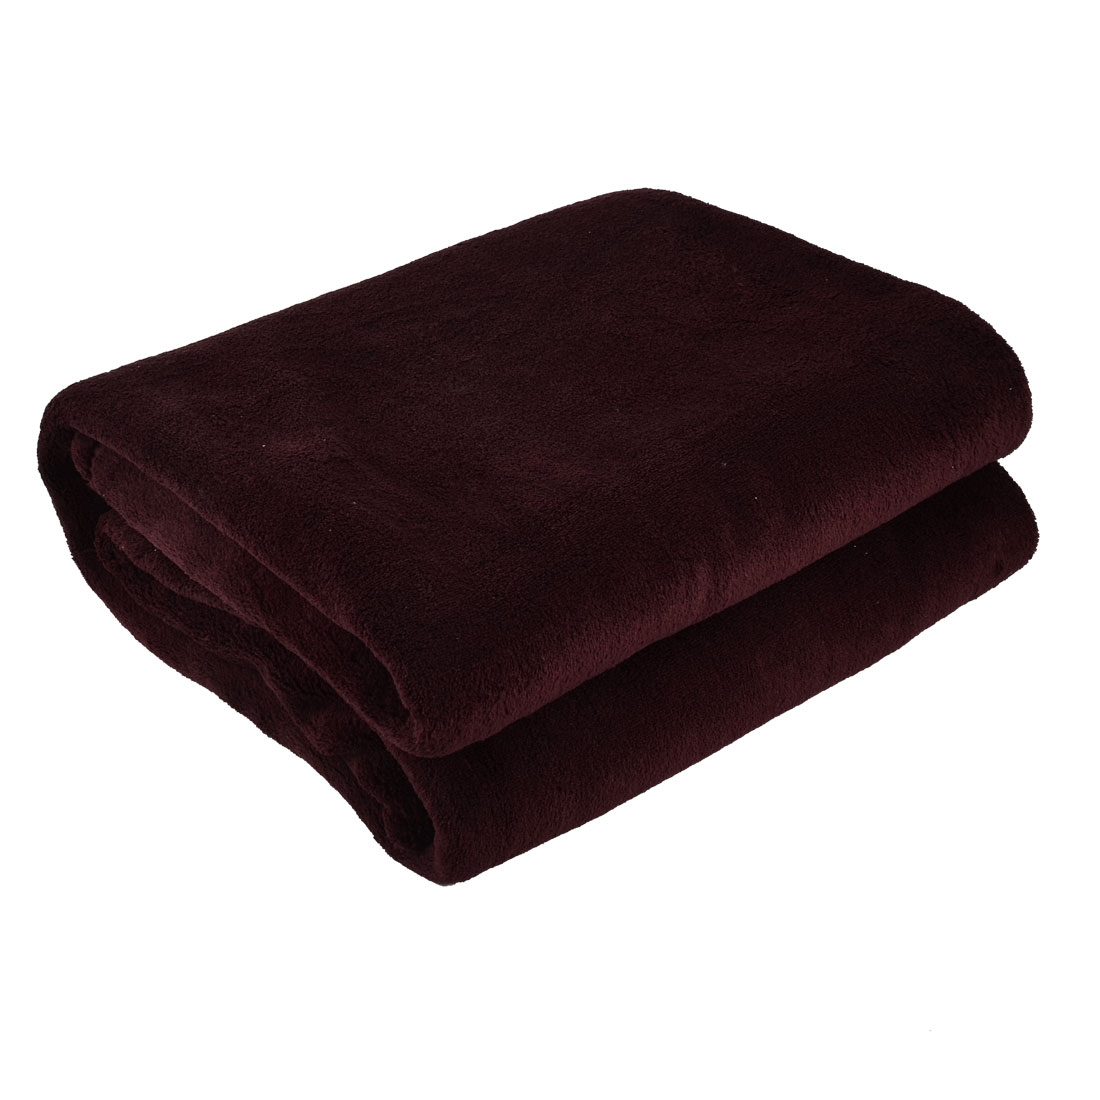 Bedroom Travel Warm Soft Throw Pure Blanket Rug Polyester Bed Quilt Sofa Burgundy